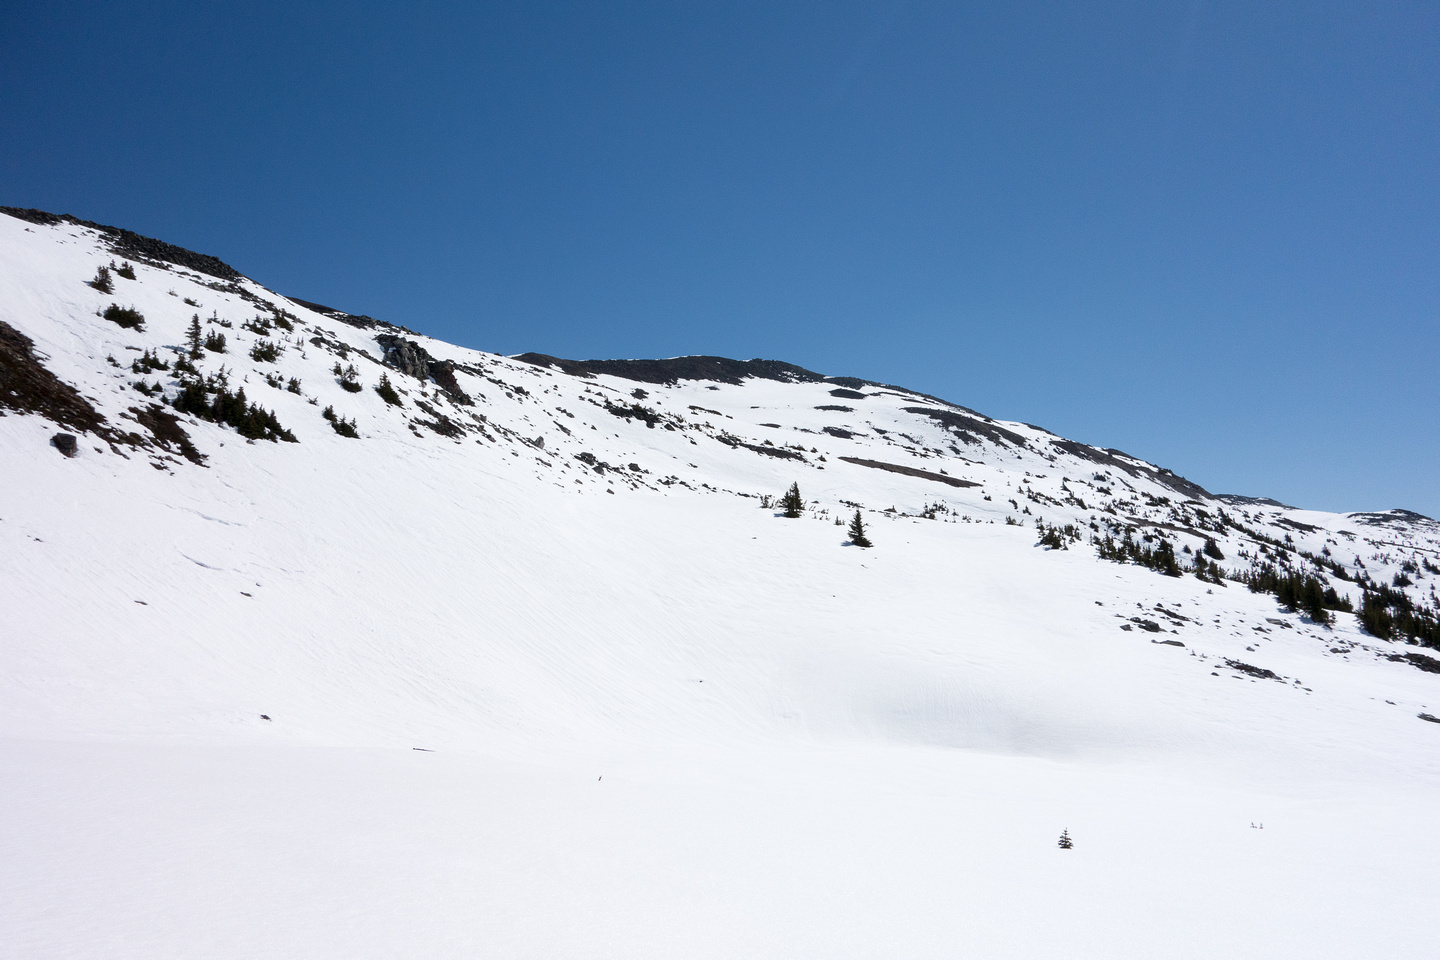 Looking up at the final ridge to the summit of Crystal Ridge.